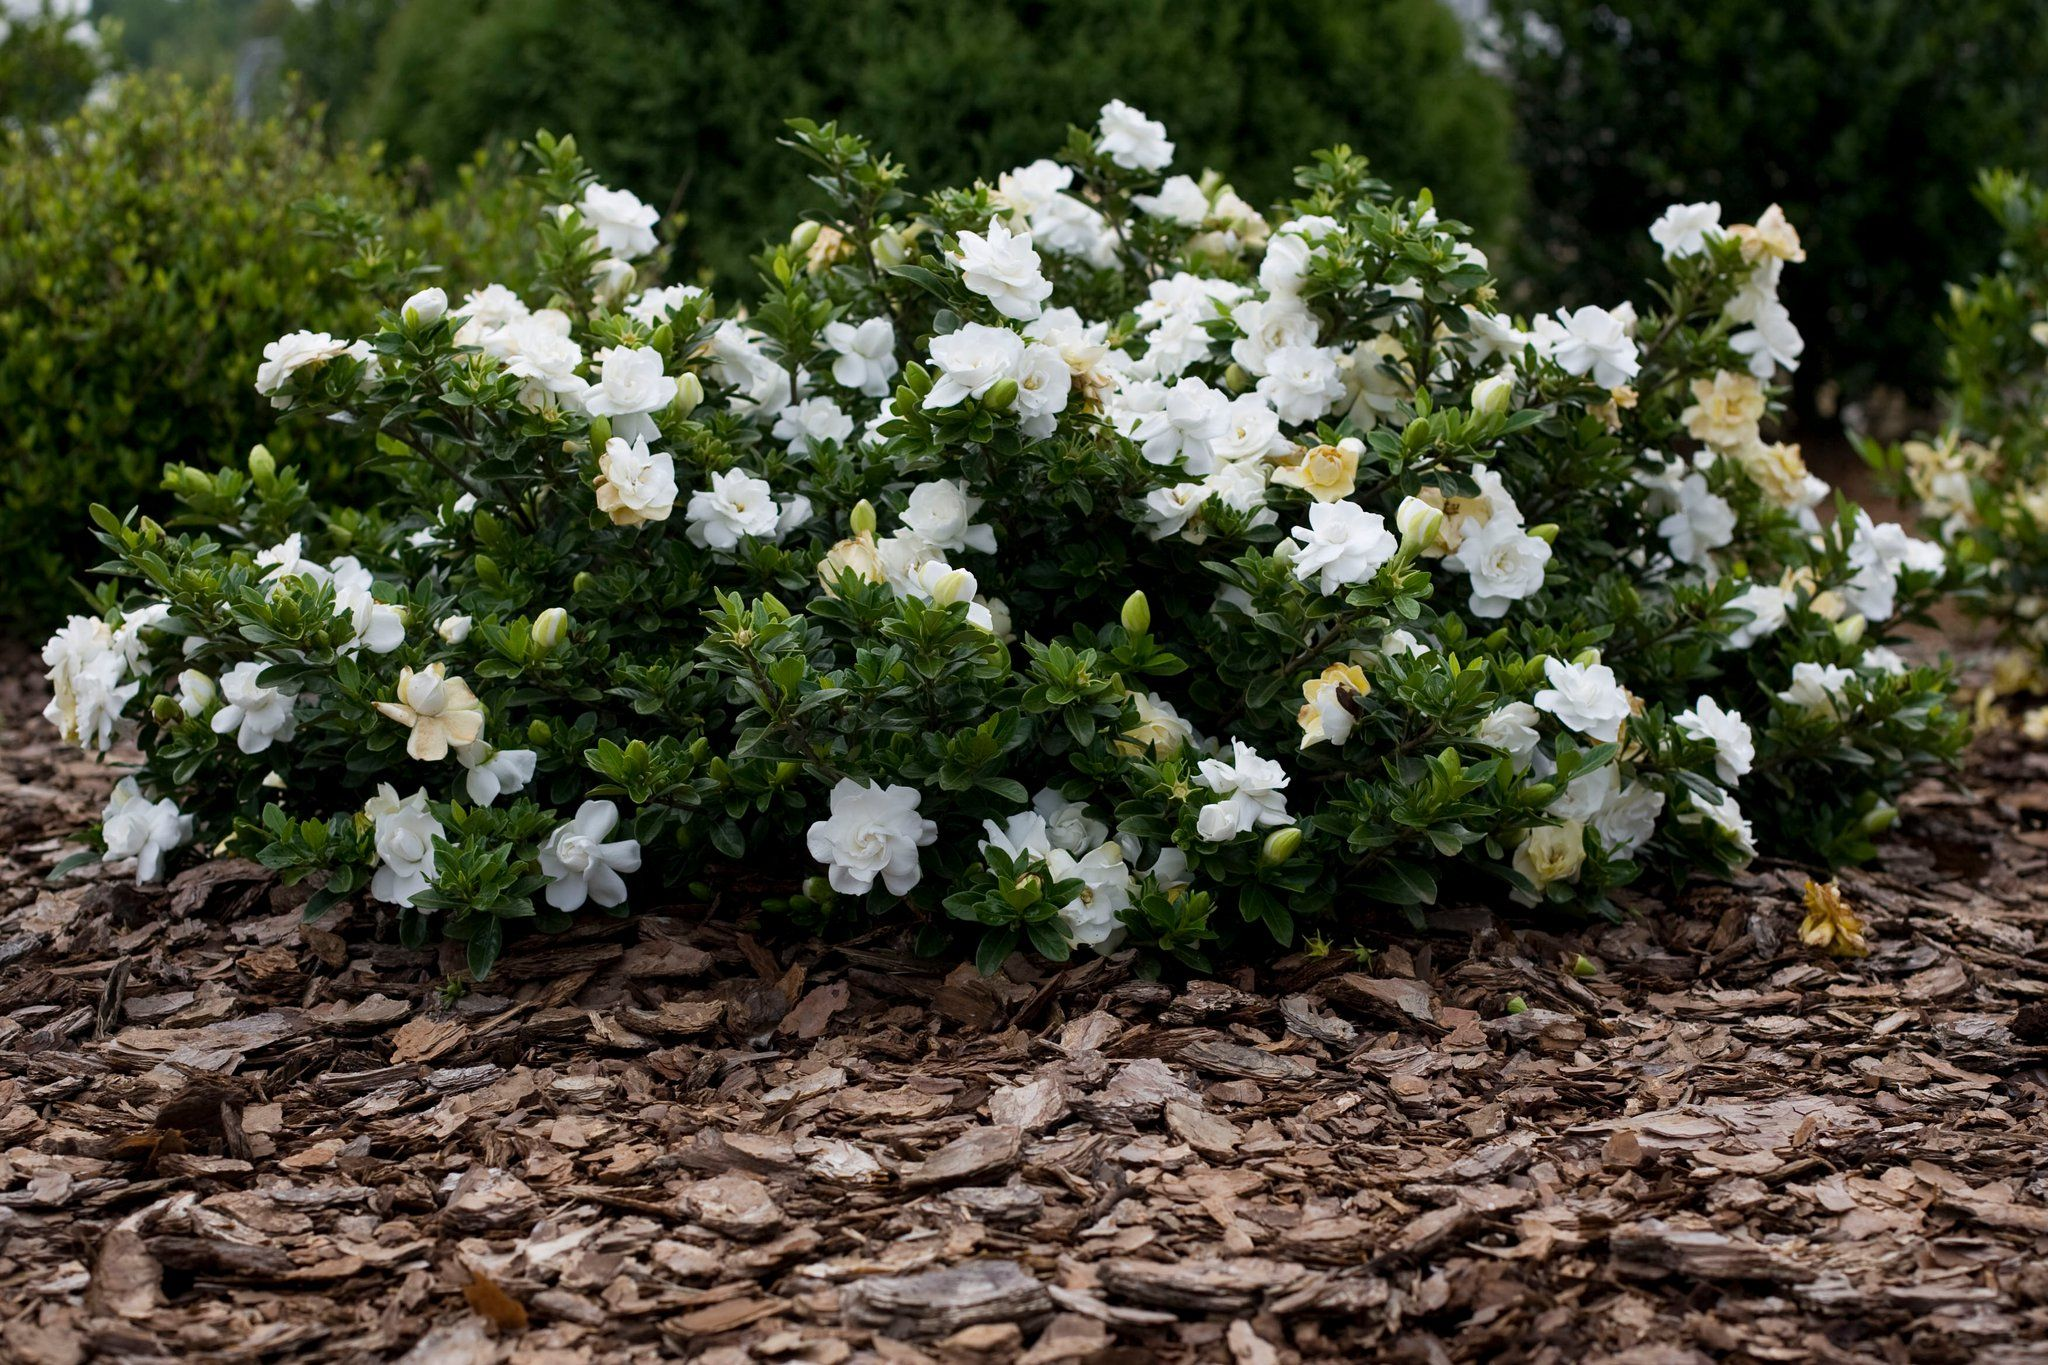 Dwarf Gardenia Radicans Frost Proof White Flowering Shrubs Flowering Shrubs Fall Landscaping Front Yard